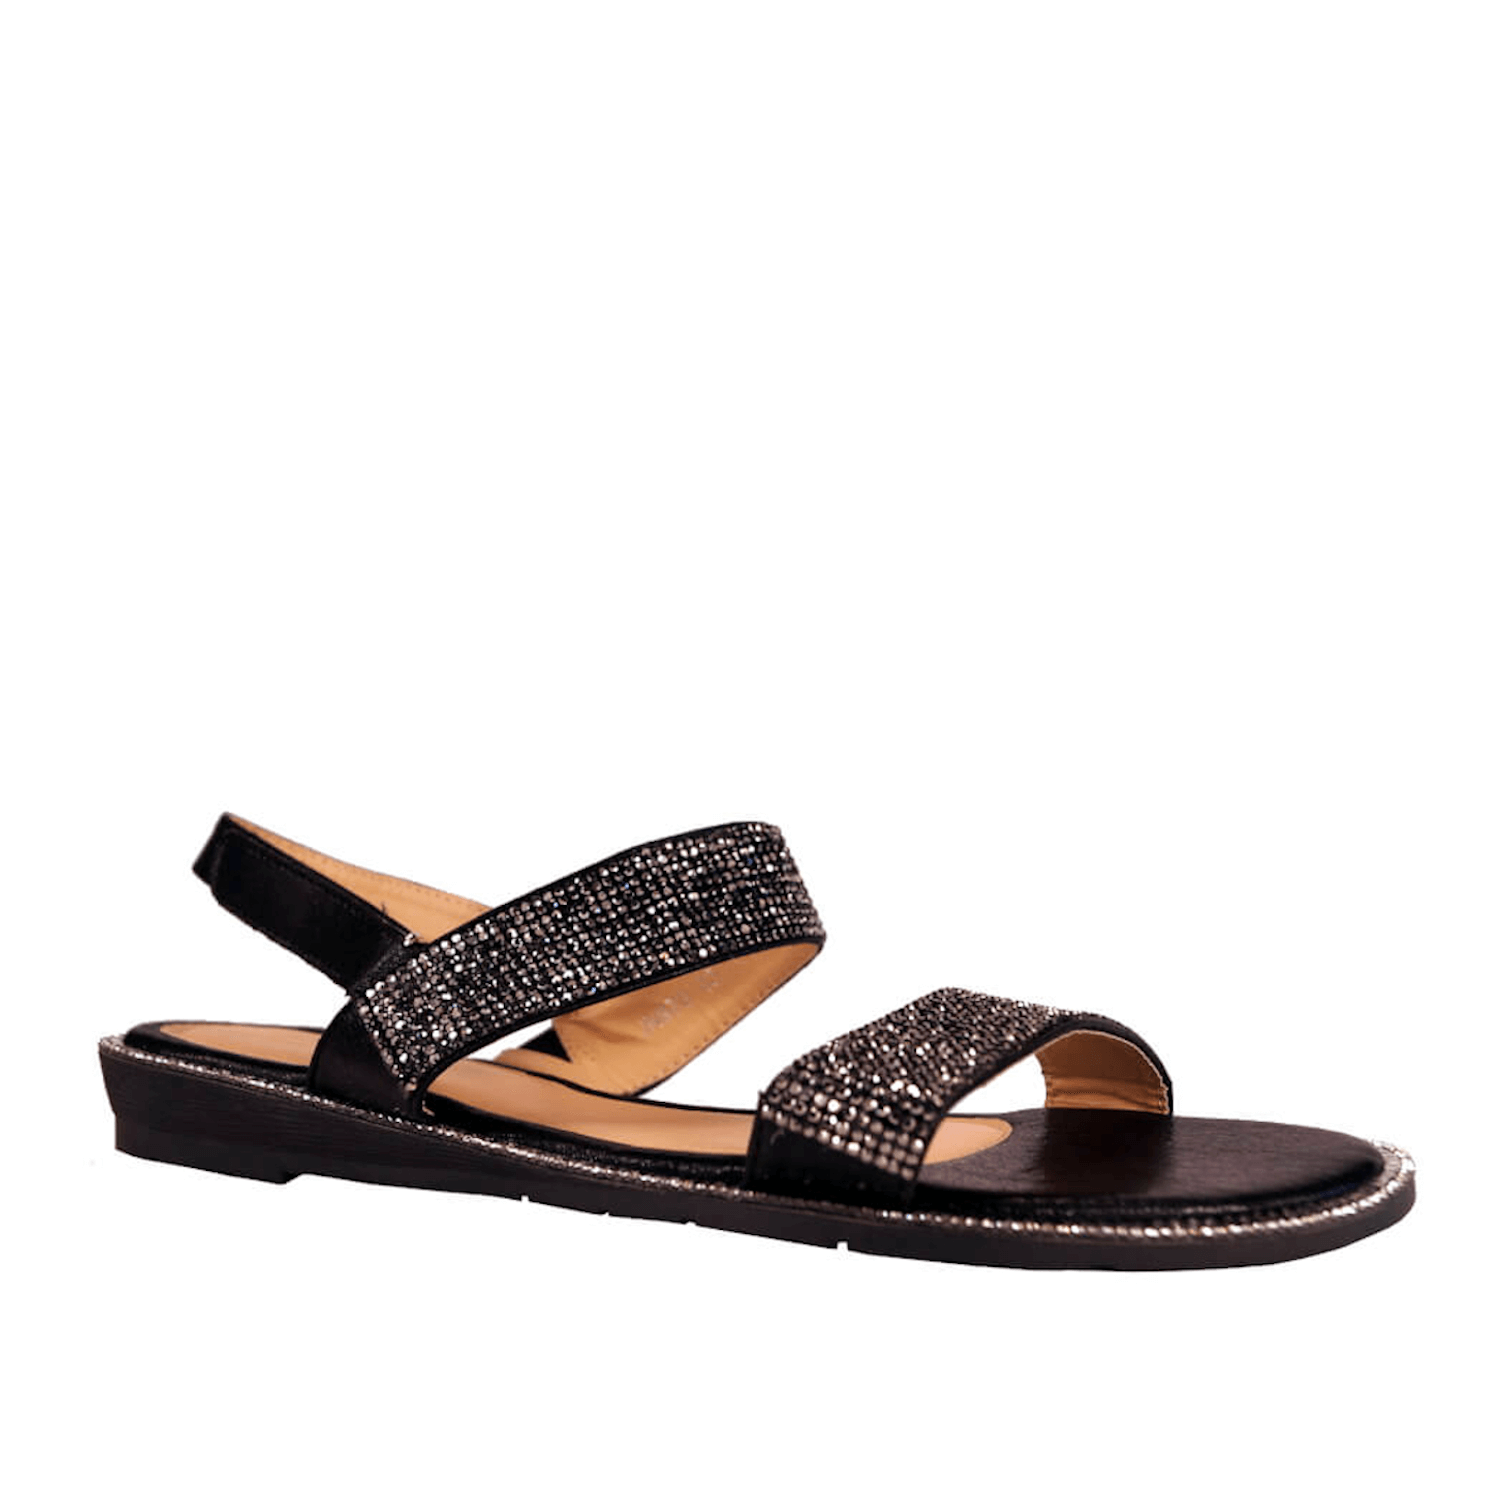 JN970 Sandal_0001_sort_fri_1500